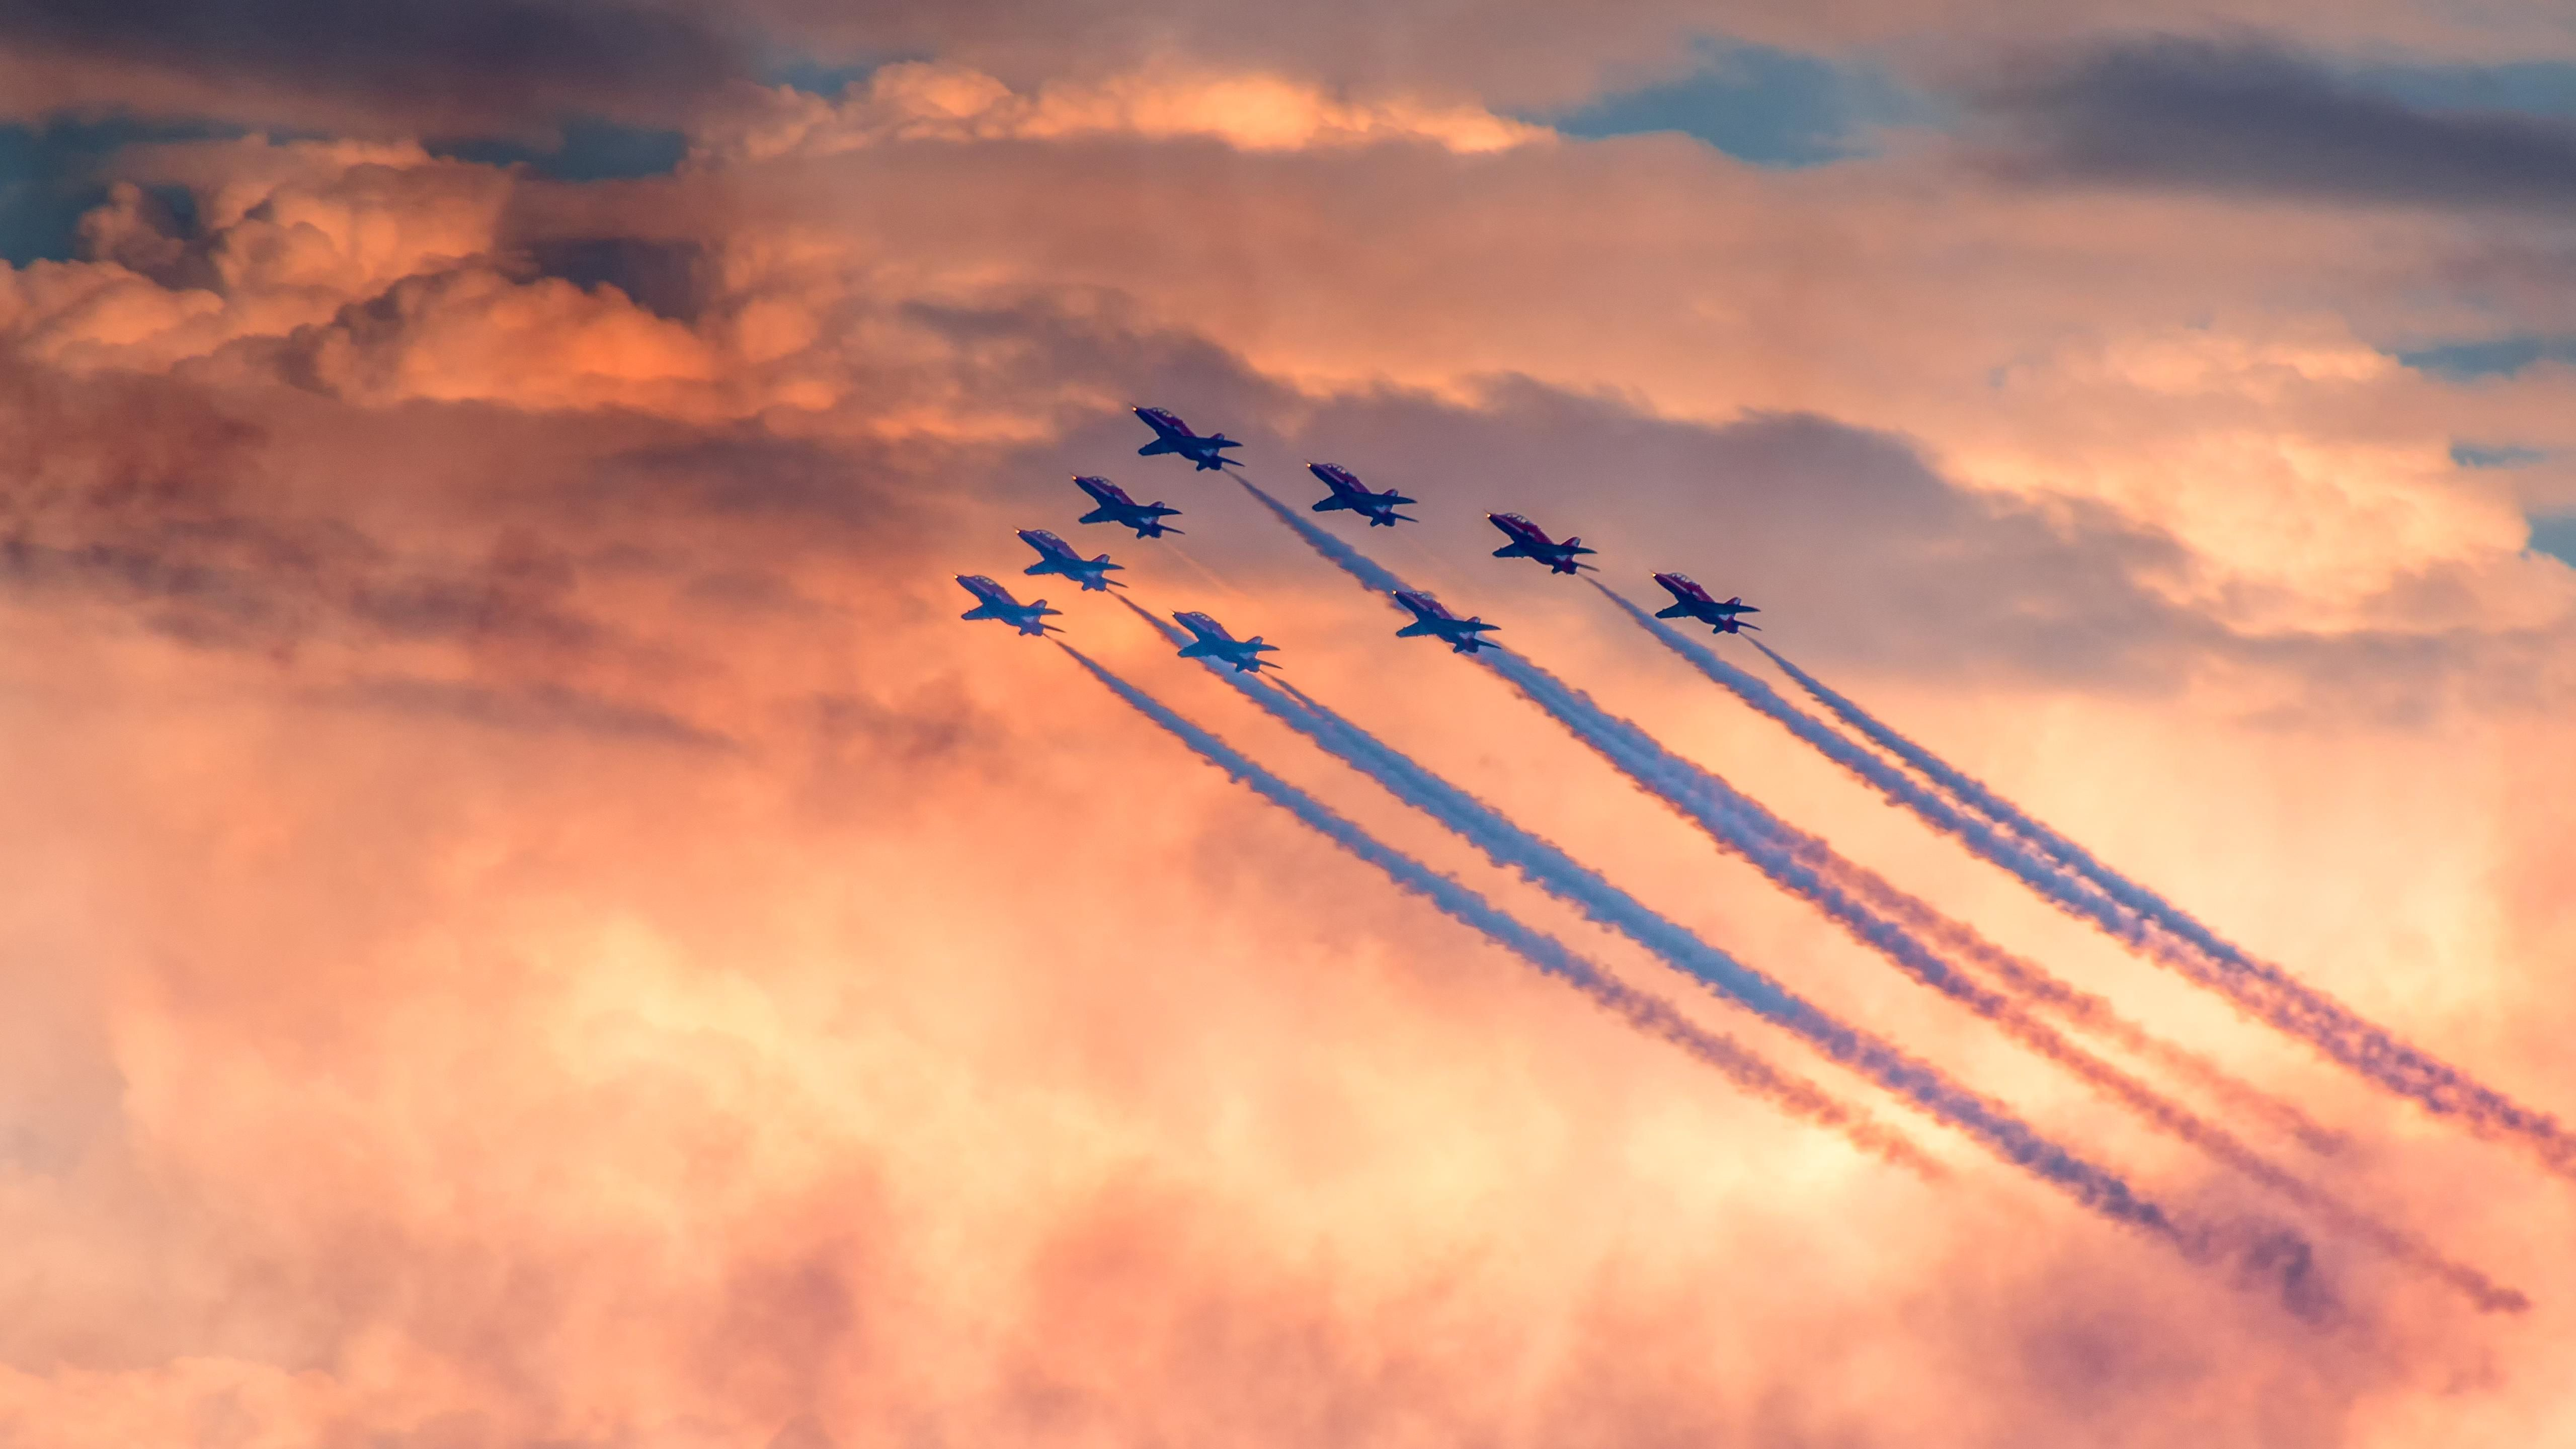 5120x2880 Pin by WallpaperLive on 4K Wallpapers | Air show, Computer ...